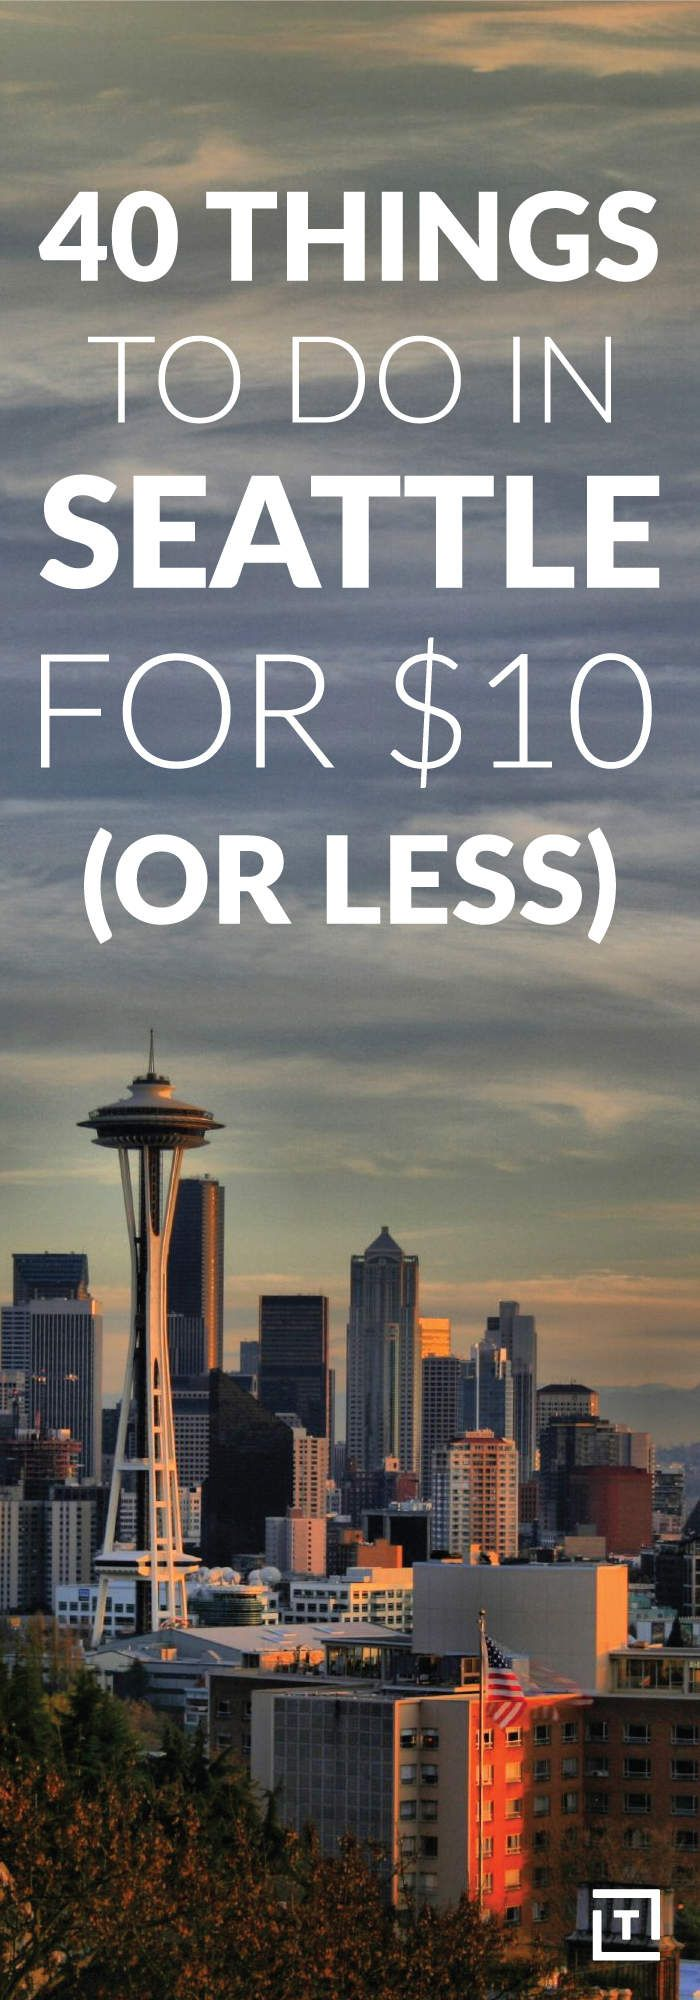 40 Things to Do in Seattle for